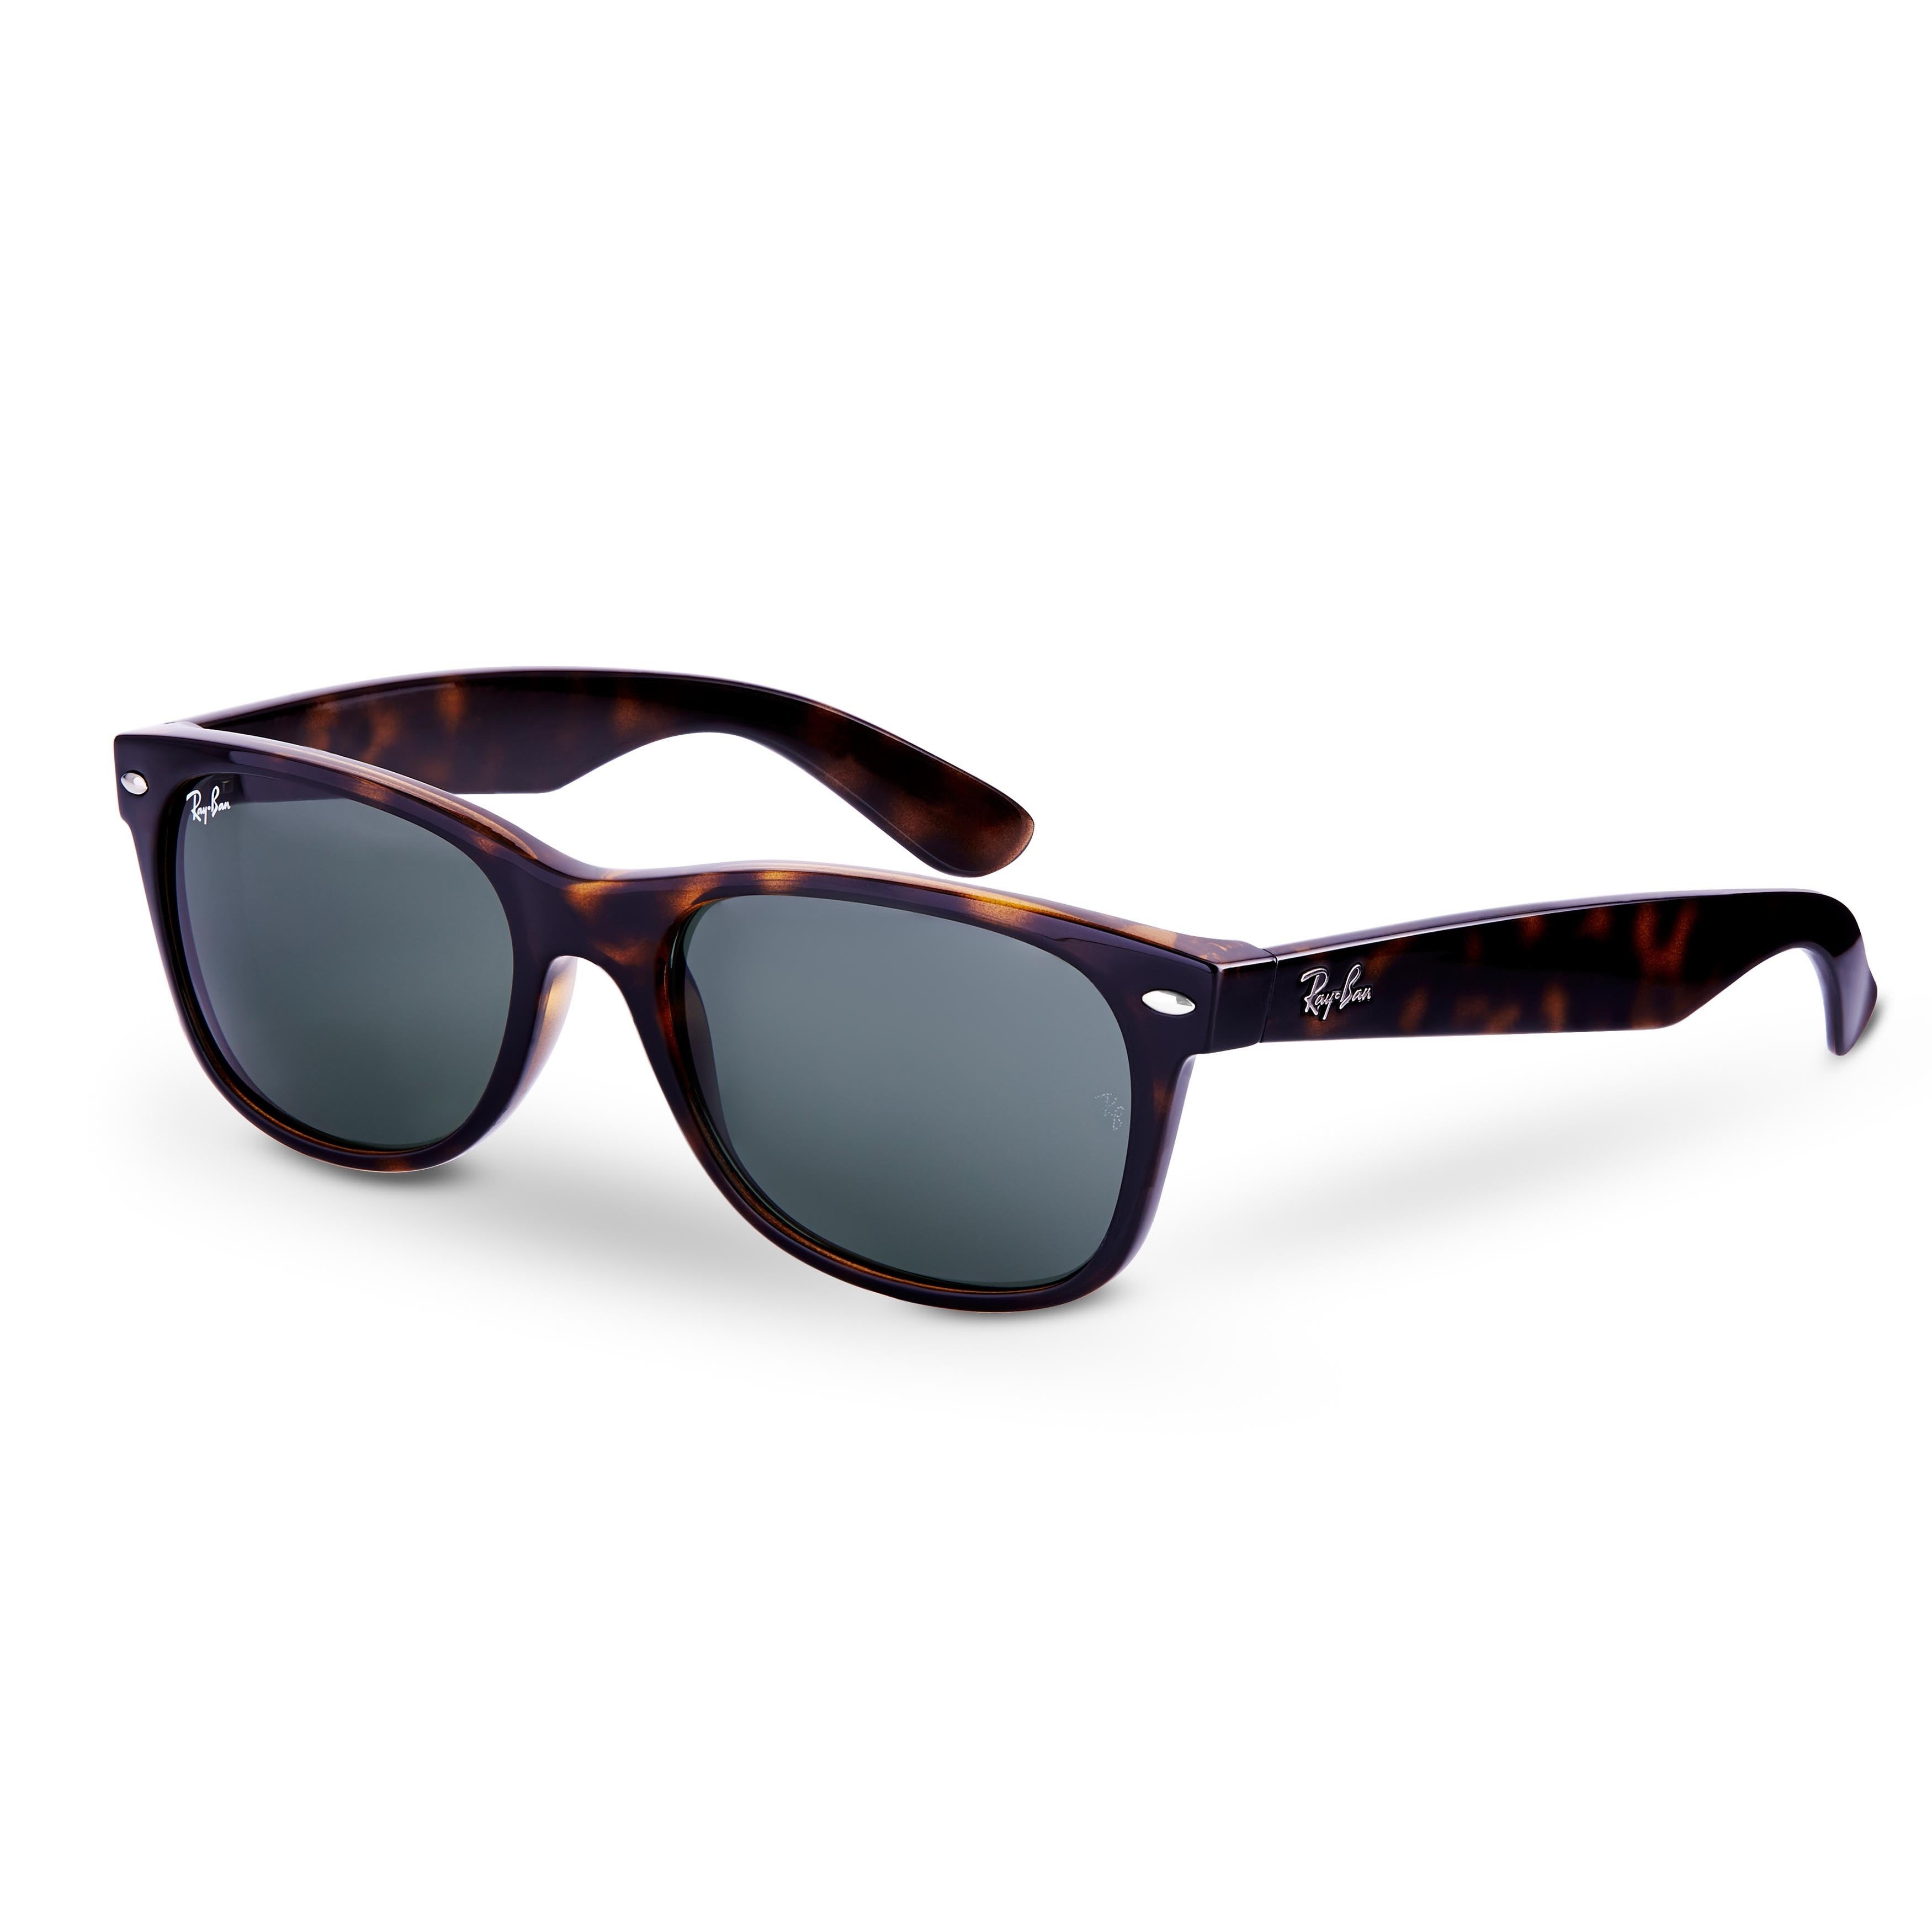 bb19aae6346c0 Ray-Ban New Wayfarer RB2132 Unisex Tortoise Frame Green Lens Sunglasses -  Brown